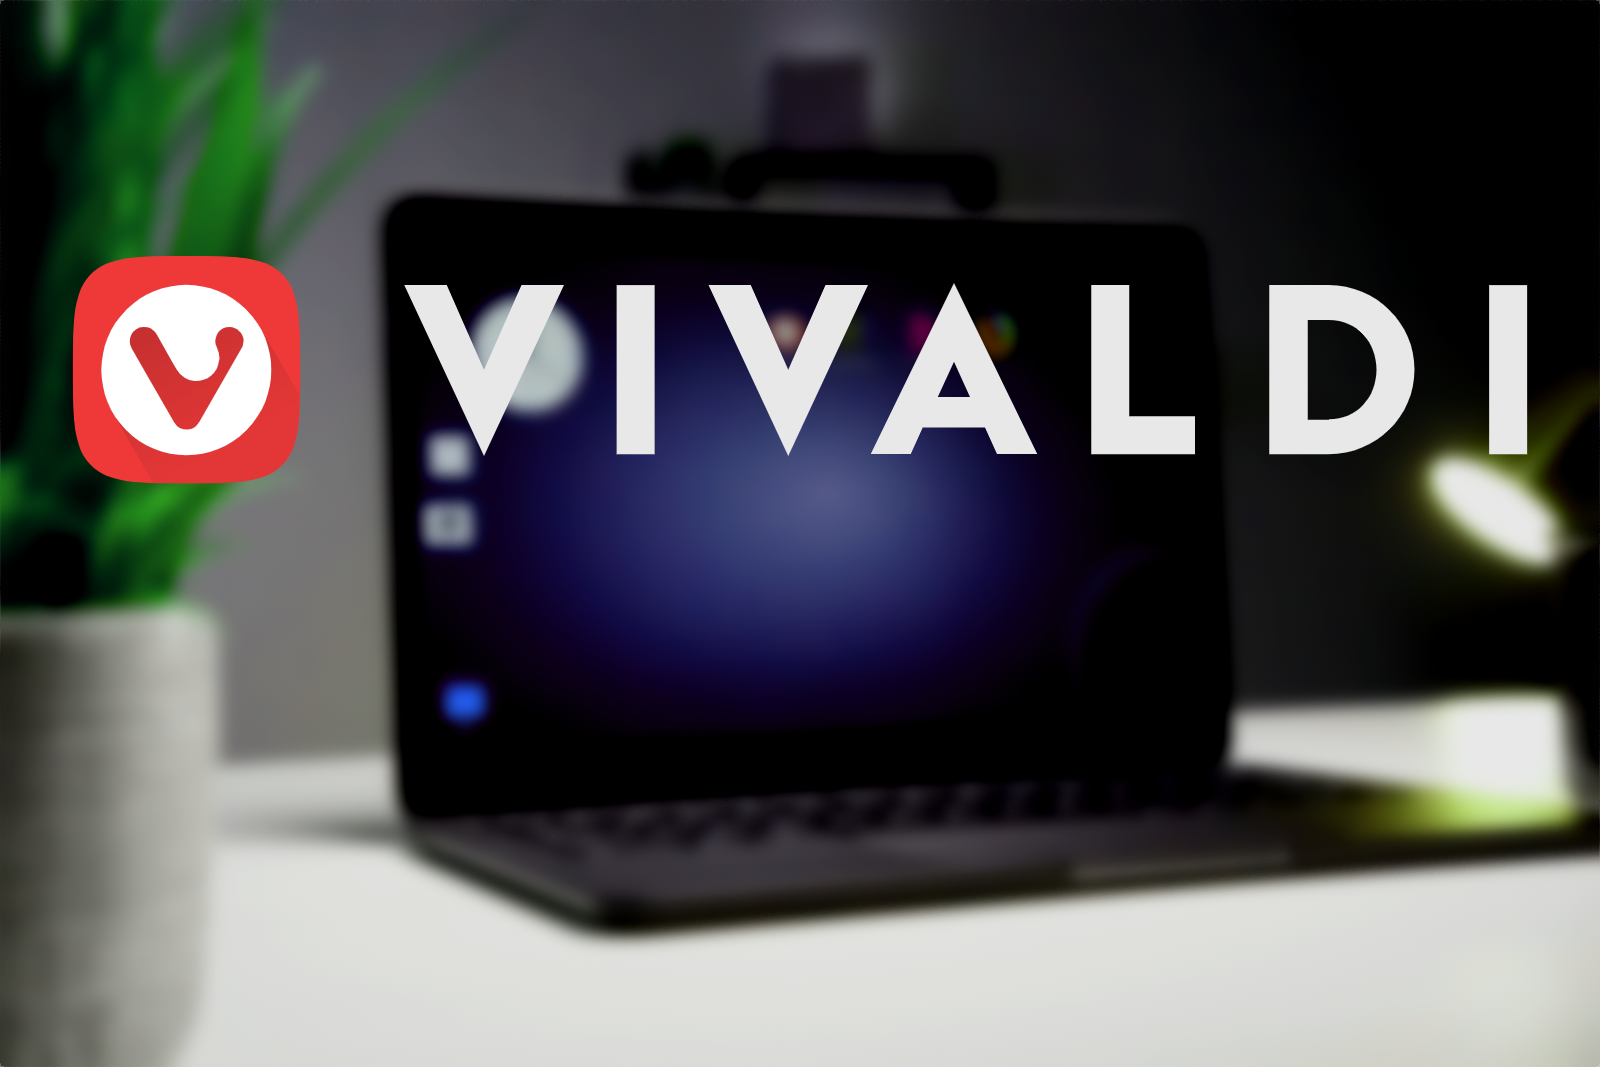 How to install the Vivaldi browser on your Chromebook